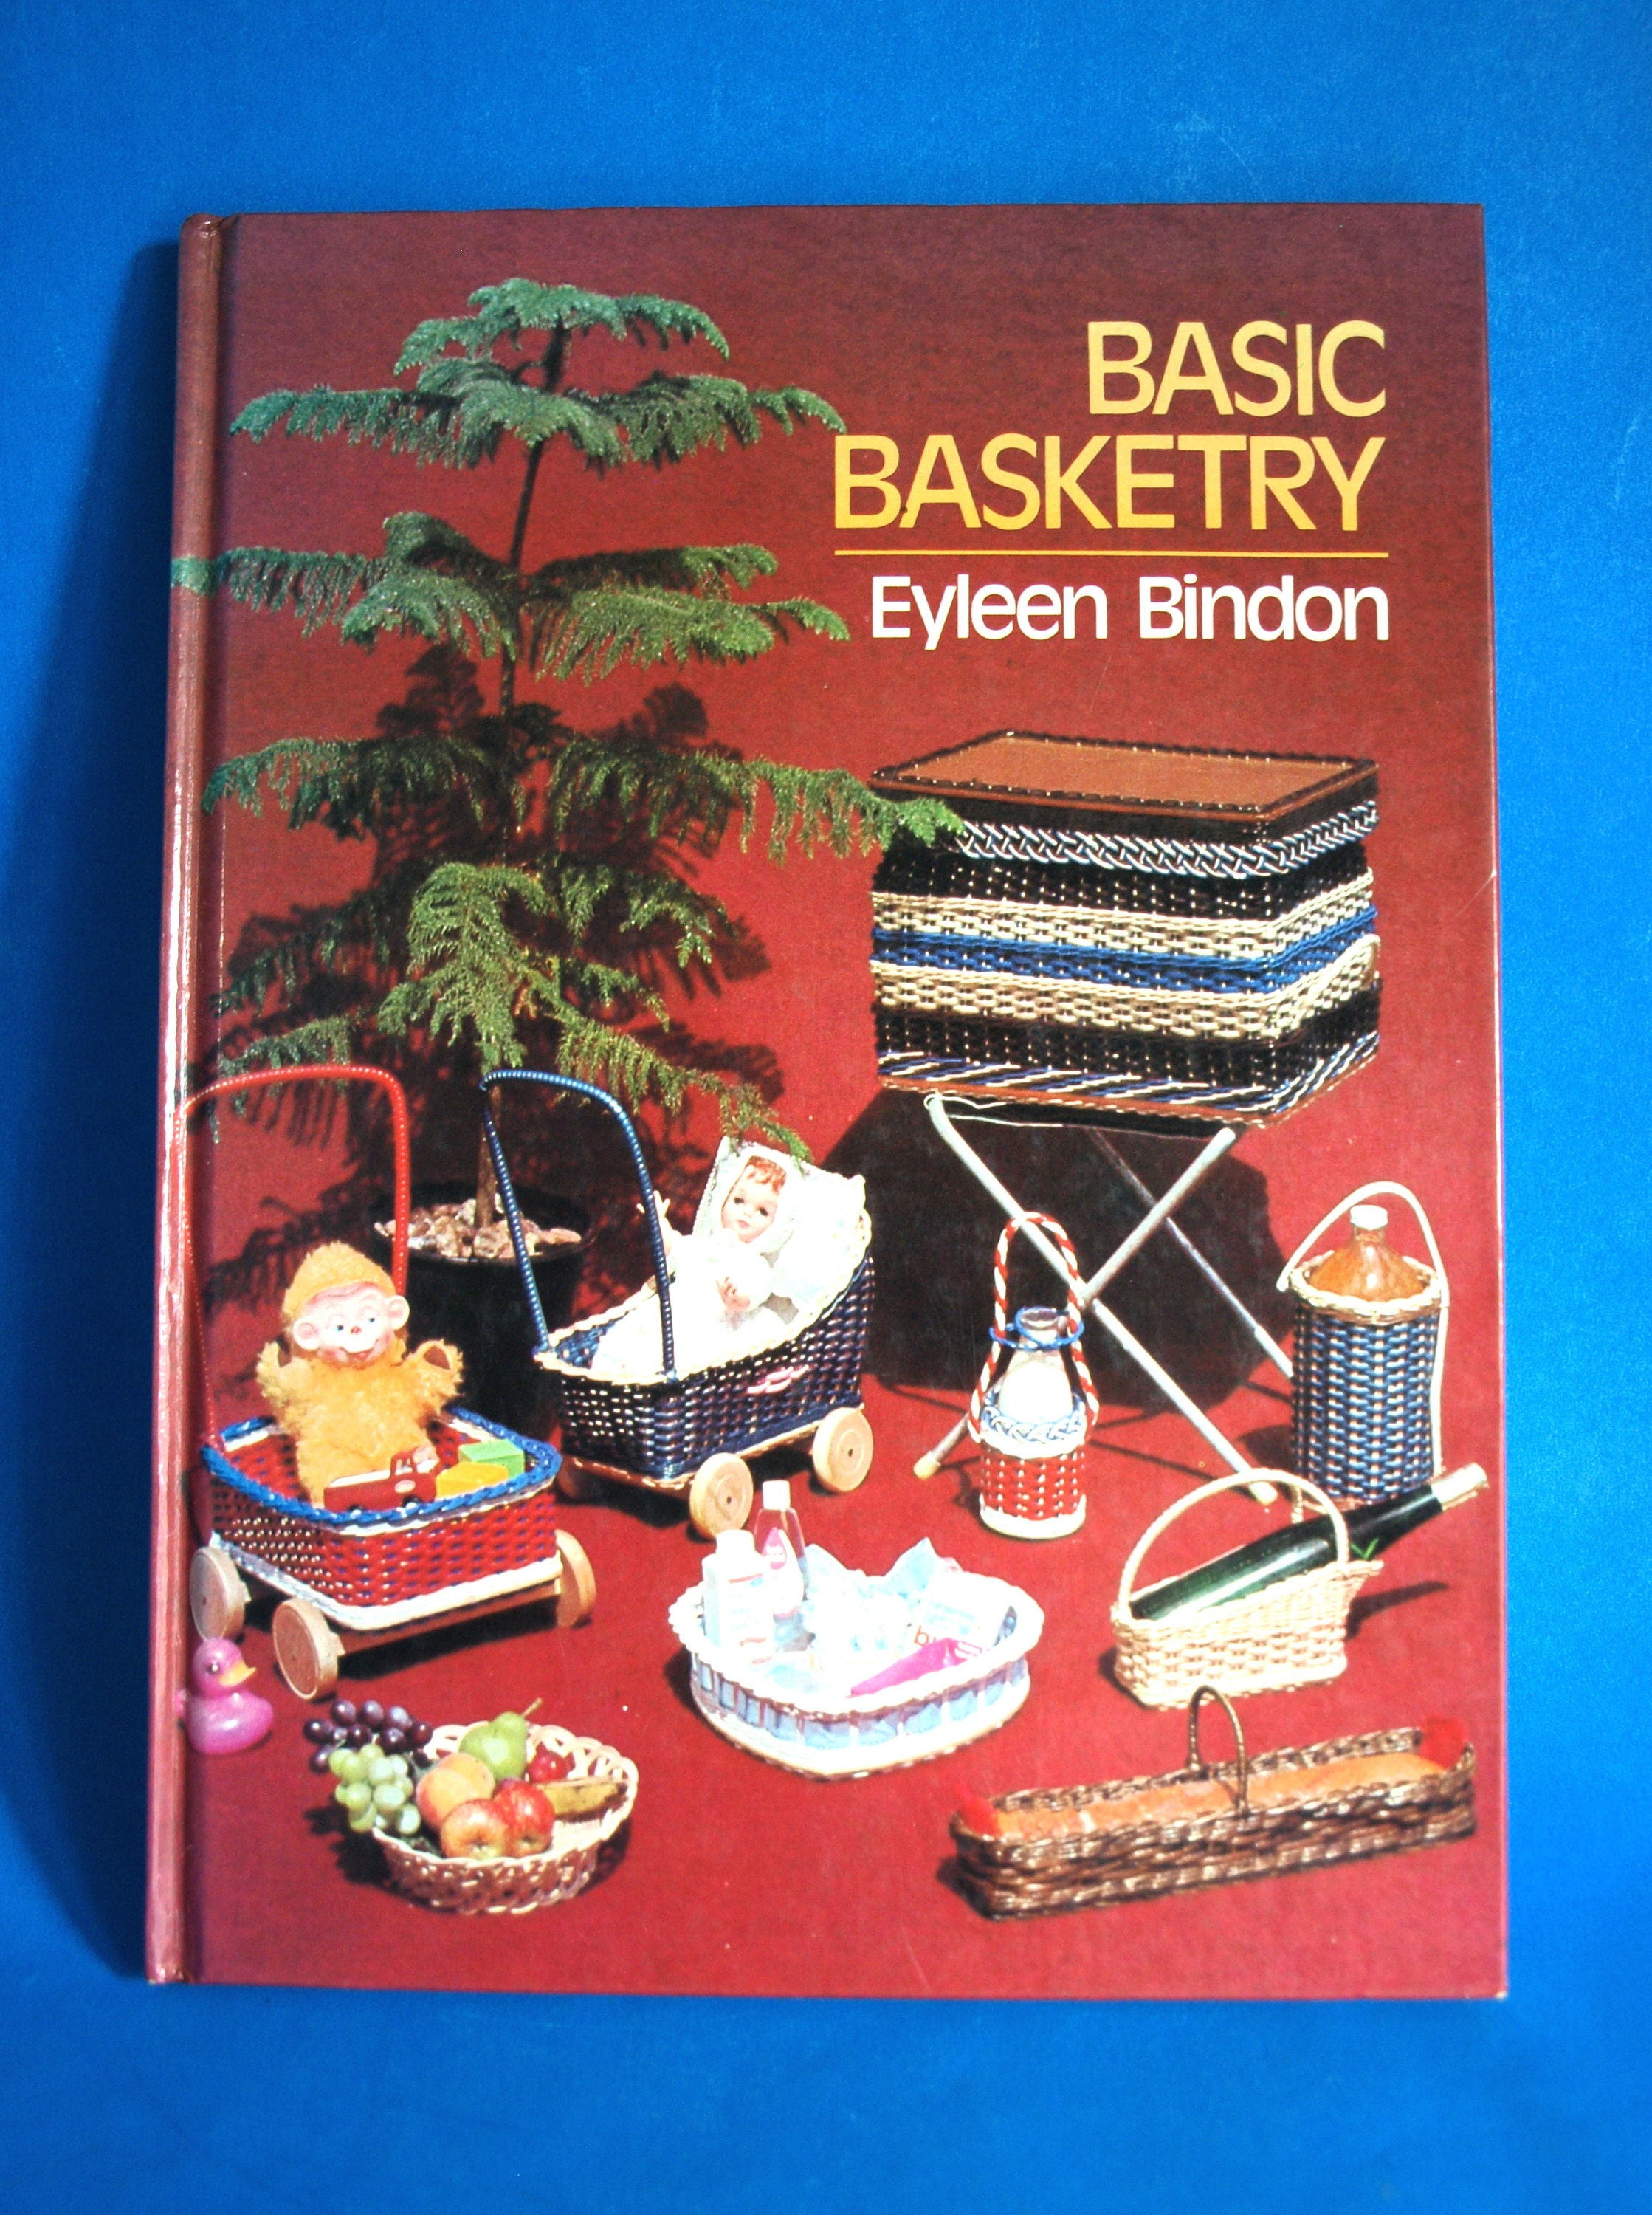 Basic Basketry Hardcover Book By Eyleen Bindon Vintage Retro